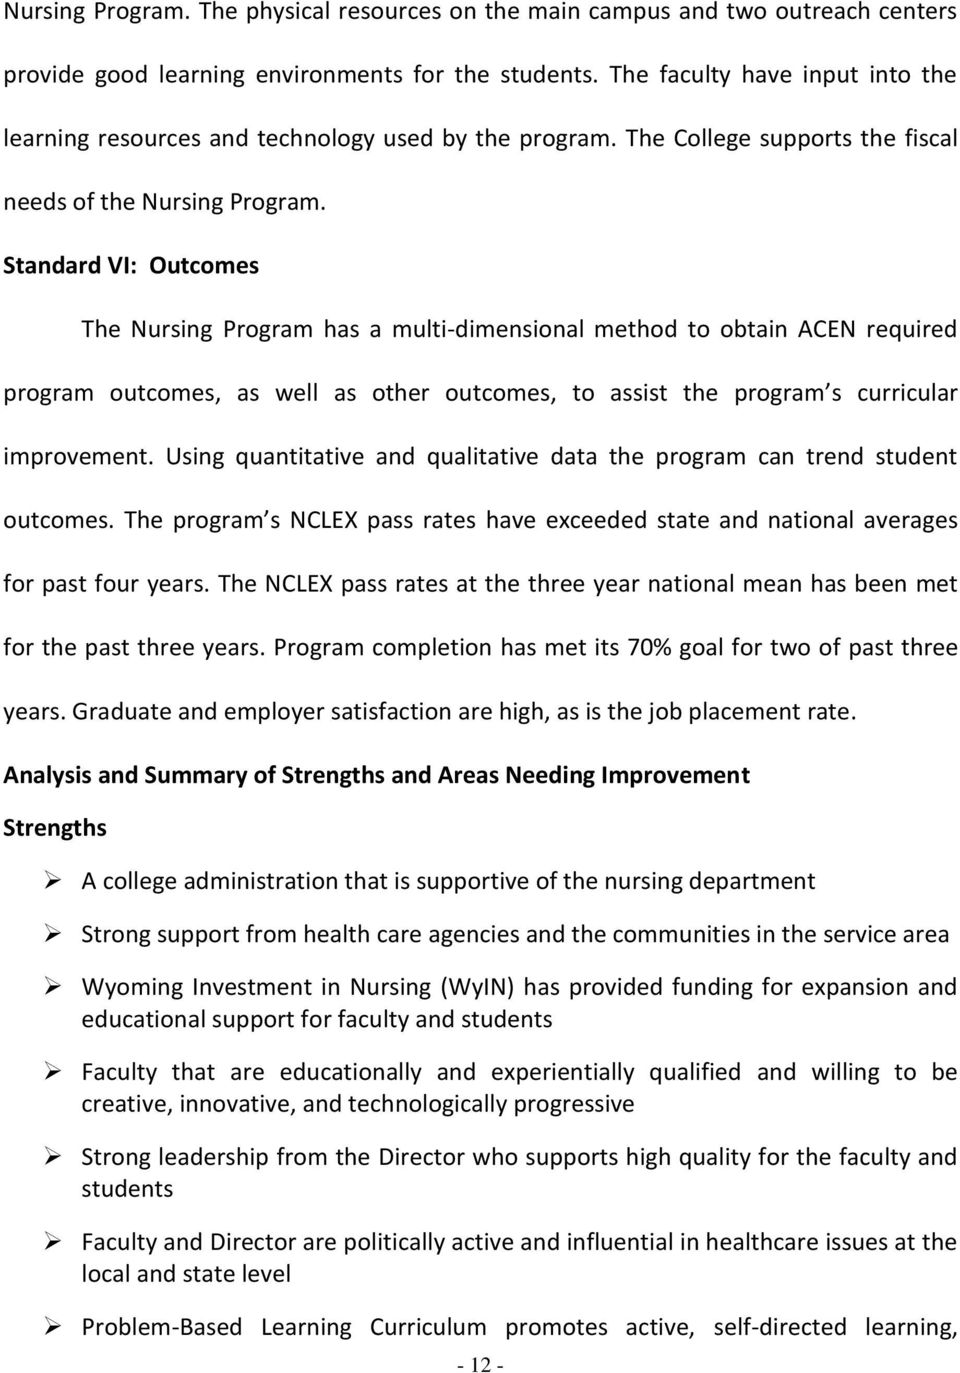 Standard VI: Outcomes The Nursing Program has a multi-dimensional method to obtain ACEN required program outcomes, as well as other outcomes, to assist the program s curricular improvement.